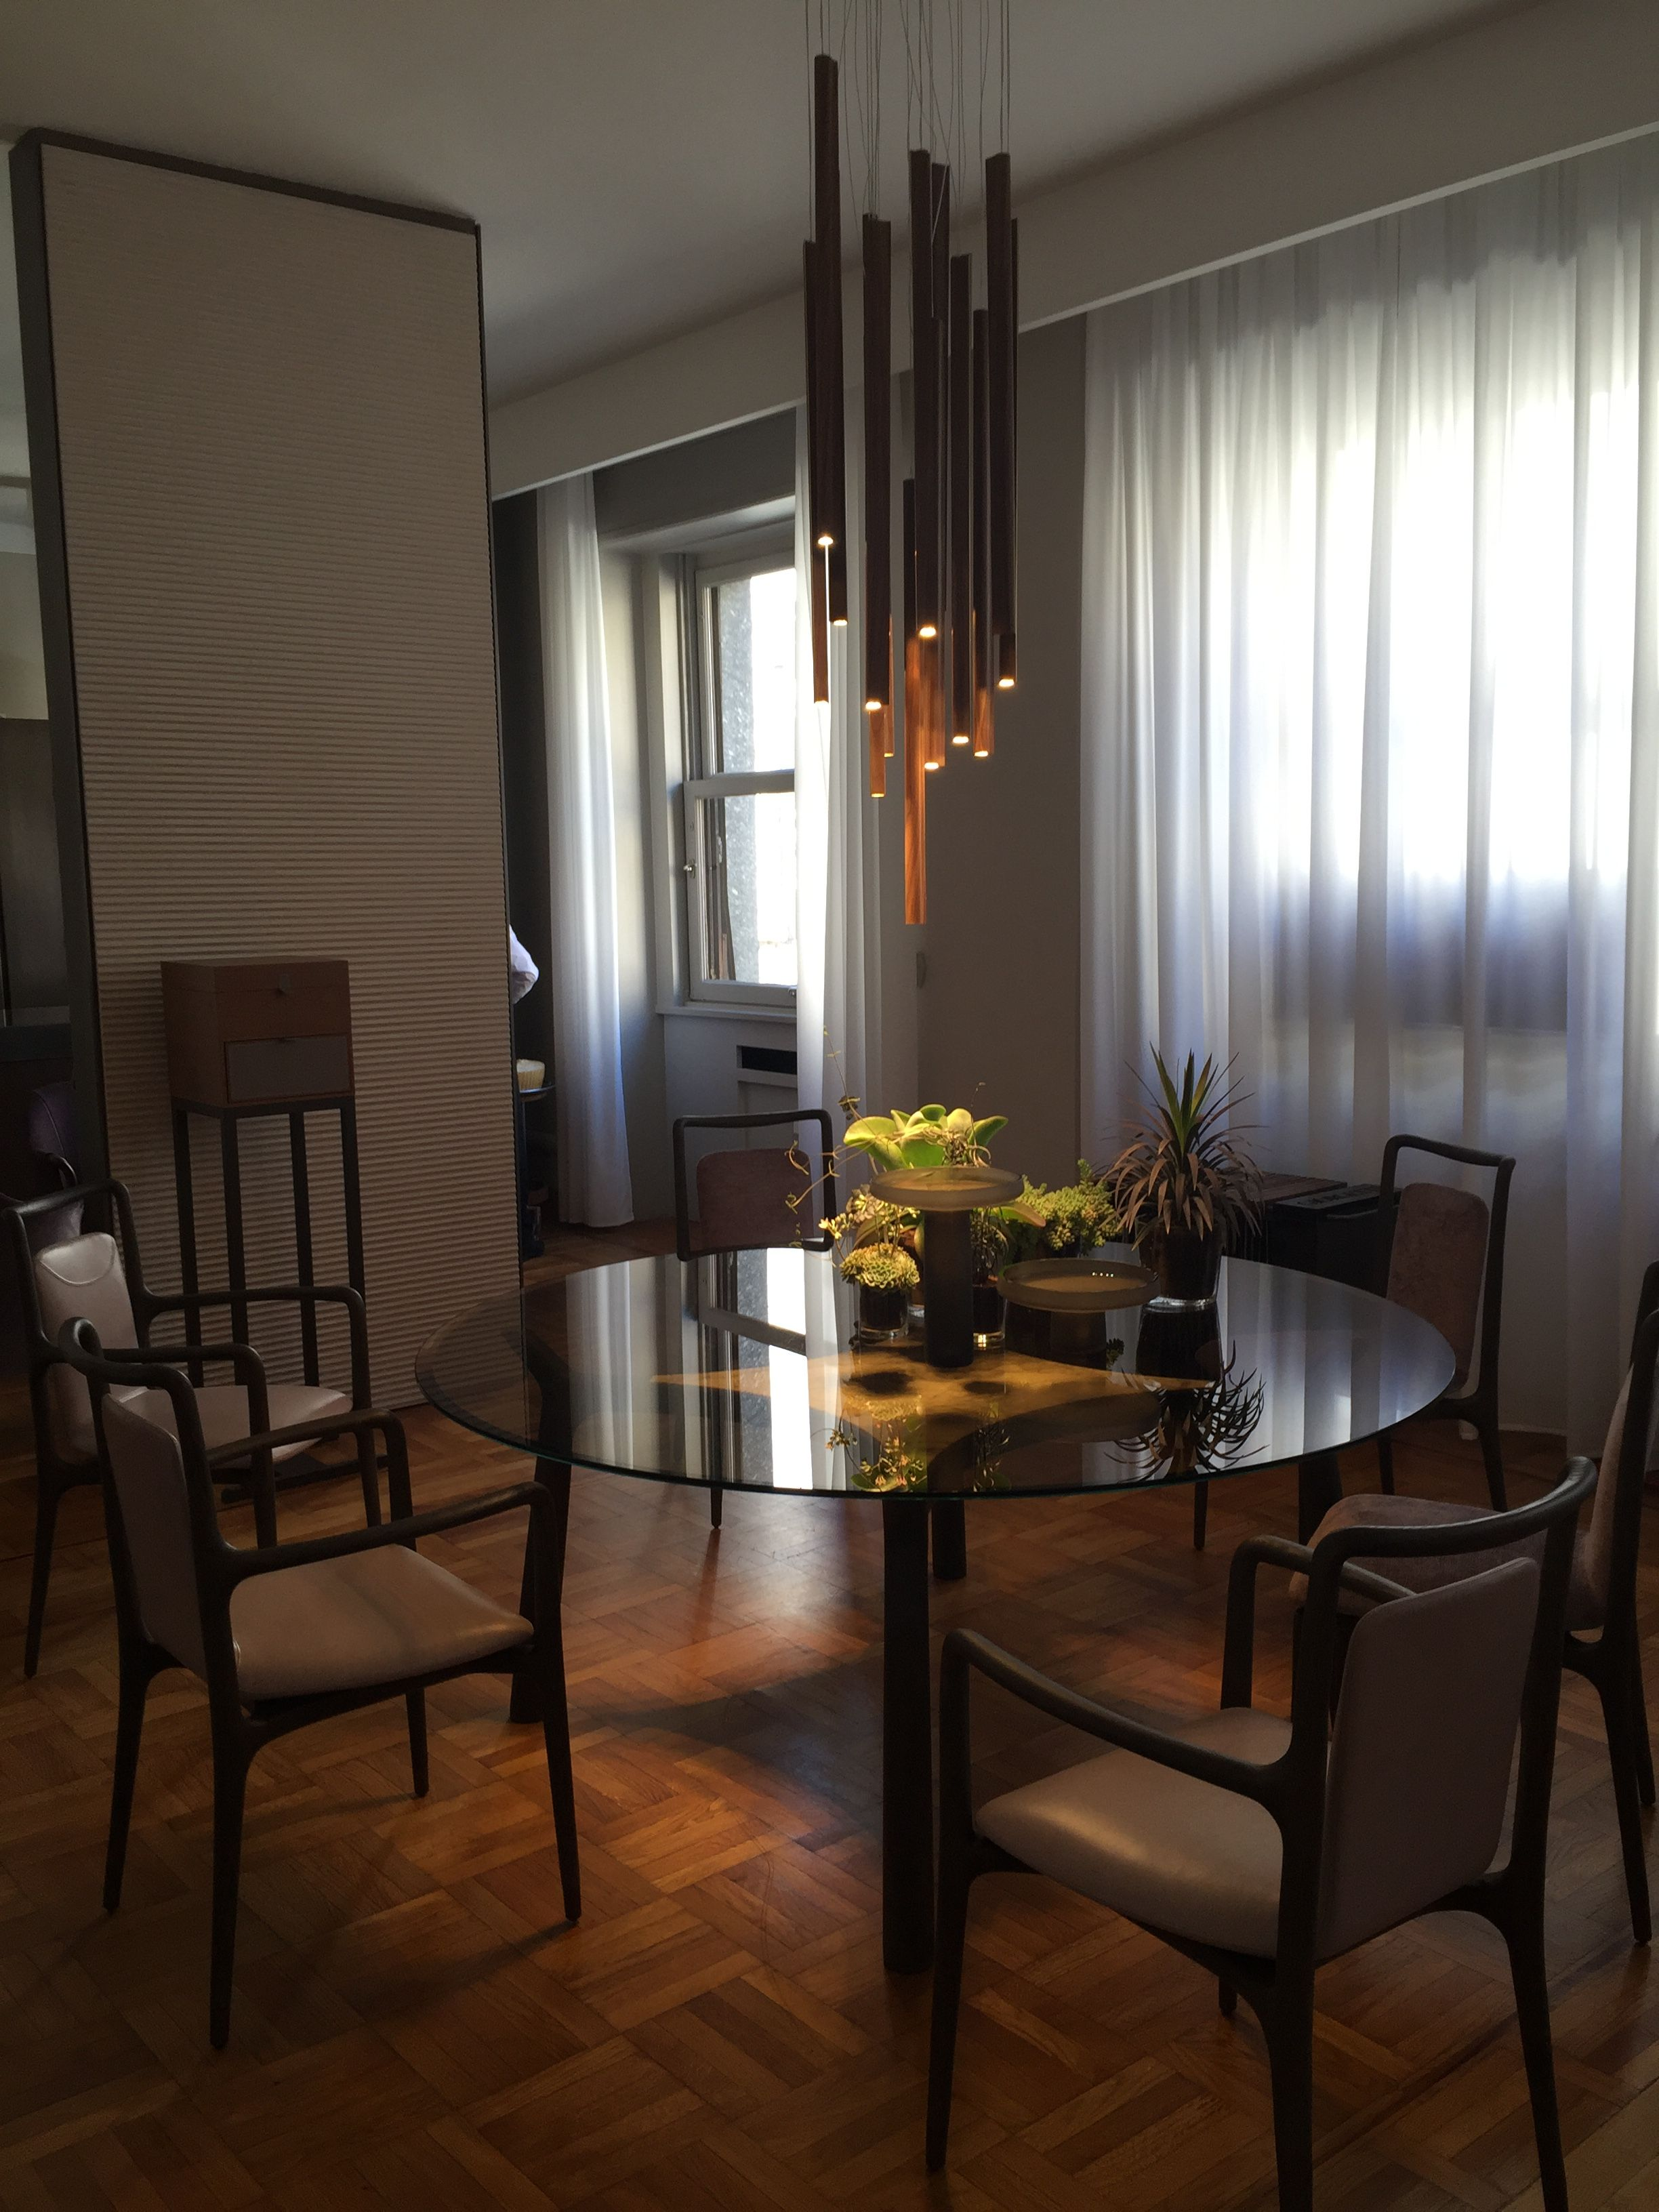 Atelier Dining Furniture dining chairs, Dining